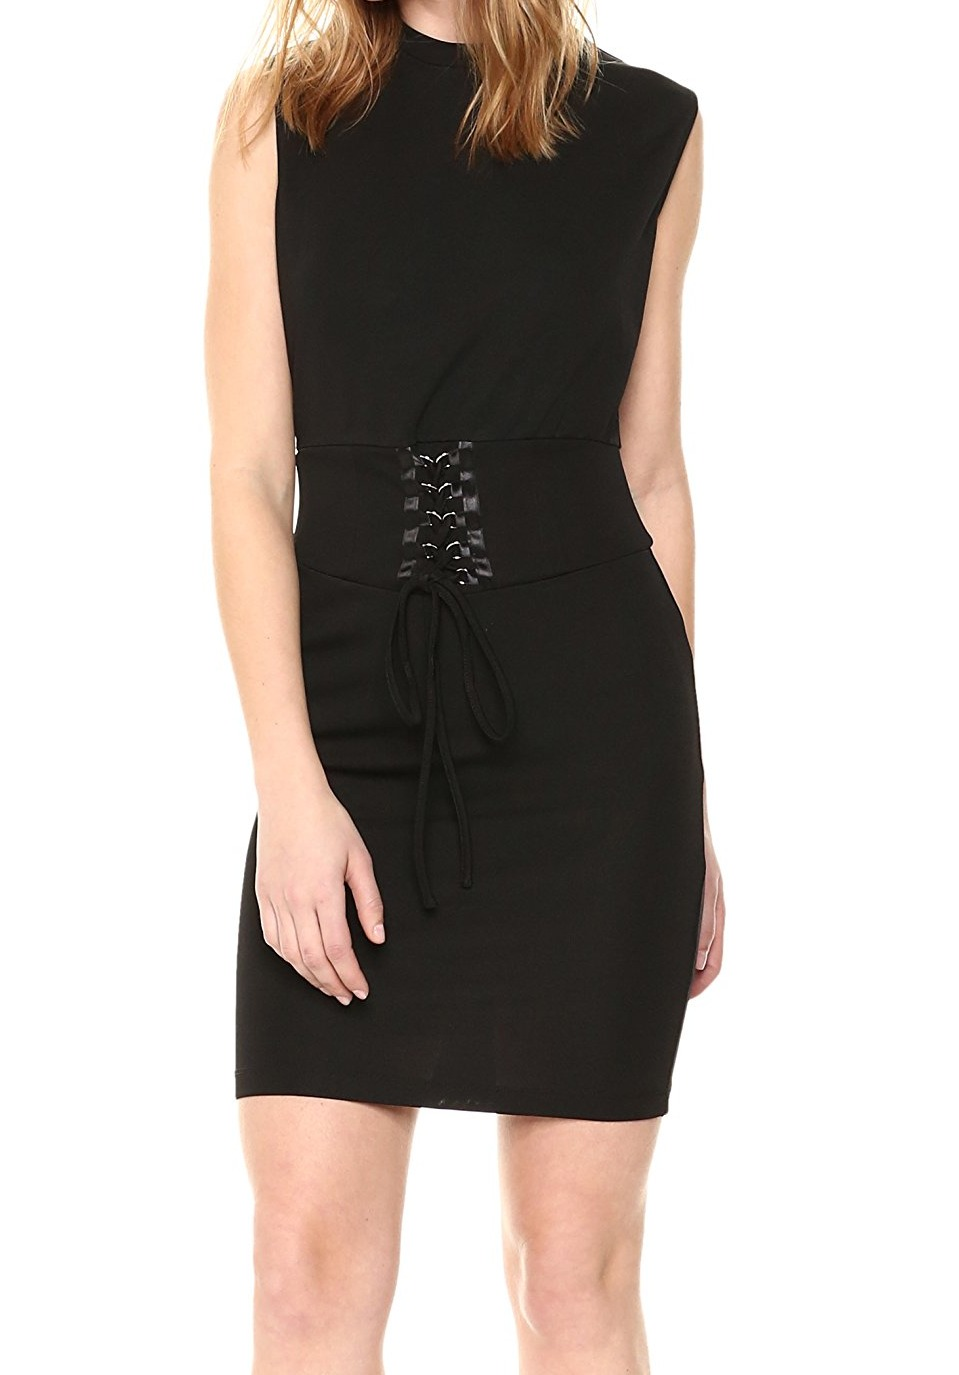 ac0daa99a2 We have more Bardot in Size 8 - Click Here Click to see all Womens Dresses  in Size 8